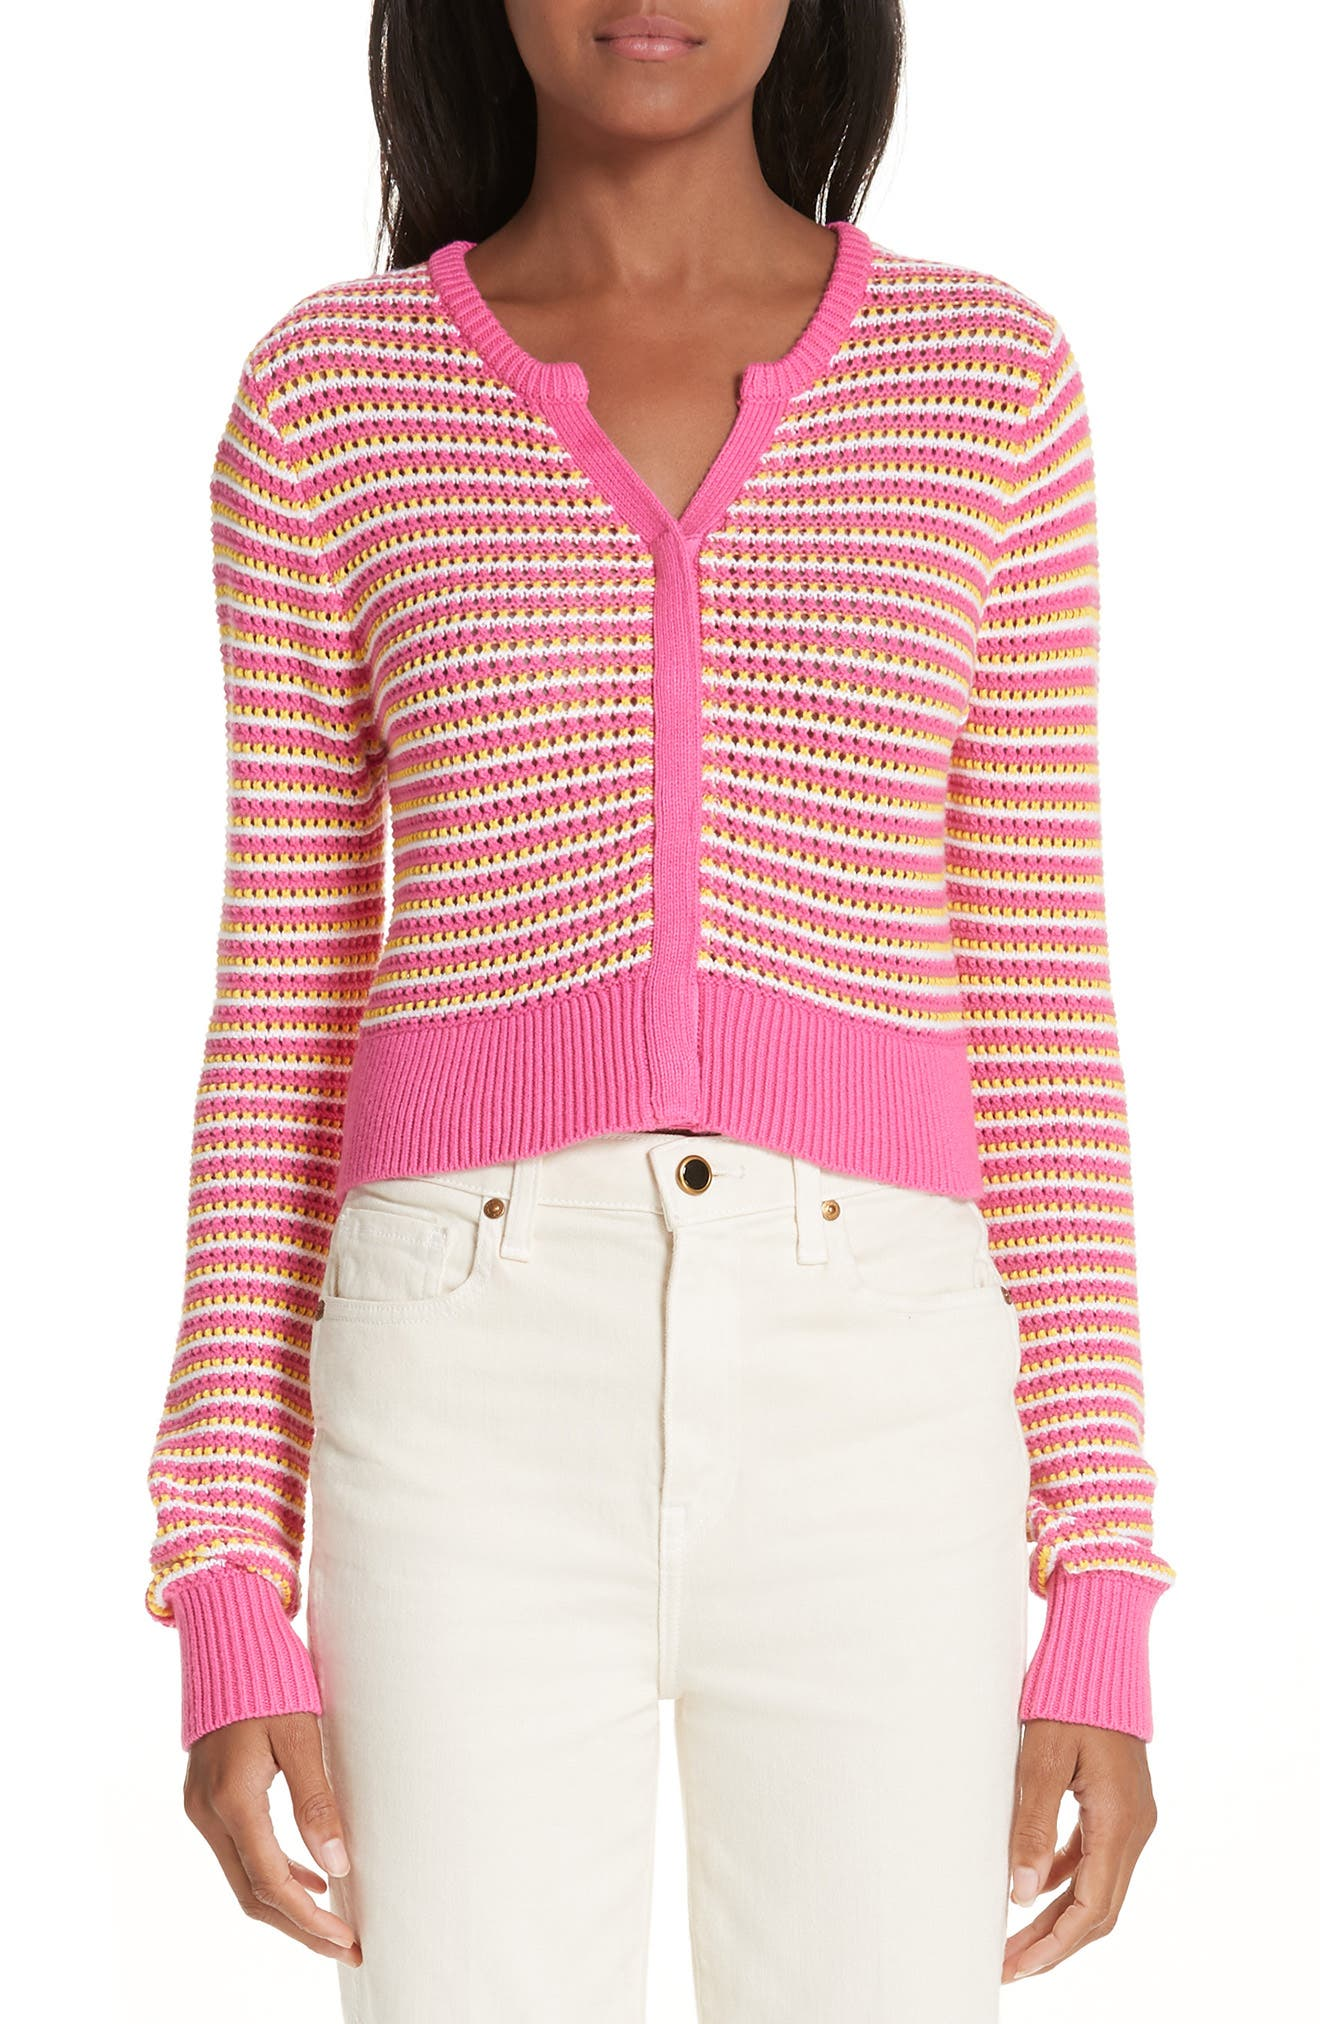 VICTOR GLEMAUD Stripe Cotton & Cashmere Button Cardigan in White Pink Combo